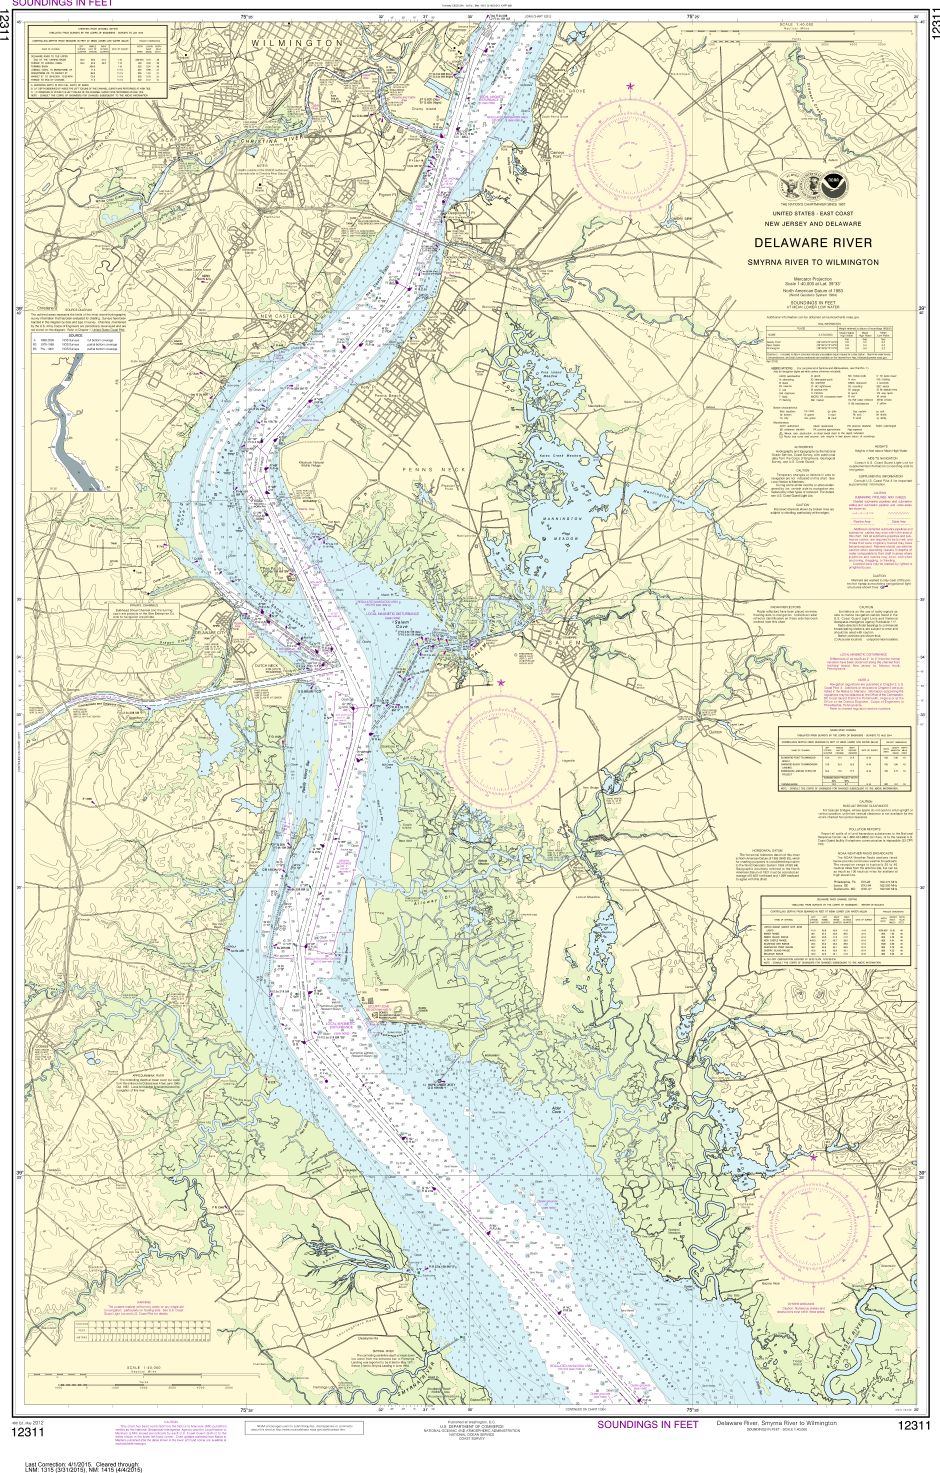 NOAA Print-on-Demand Charts US Waters-Delaware River Smyrna River to Wilmington-12311